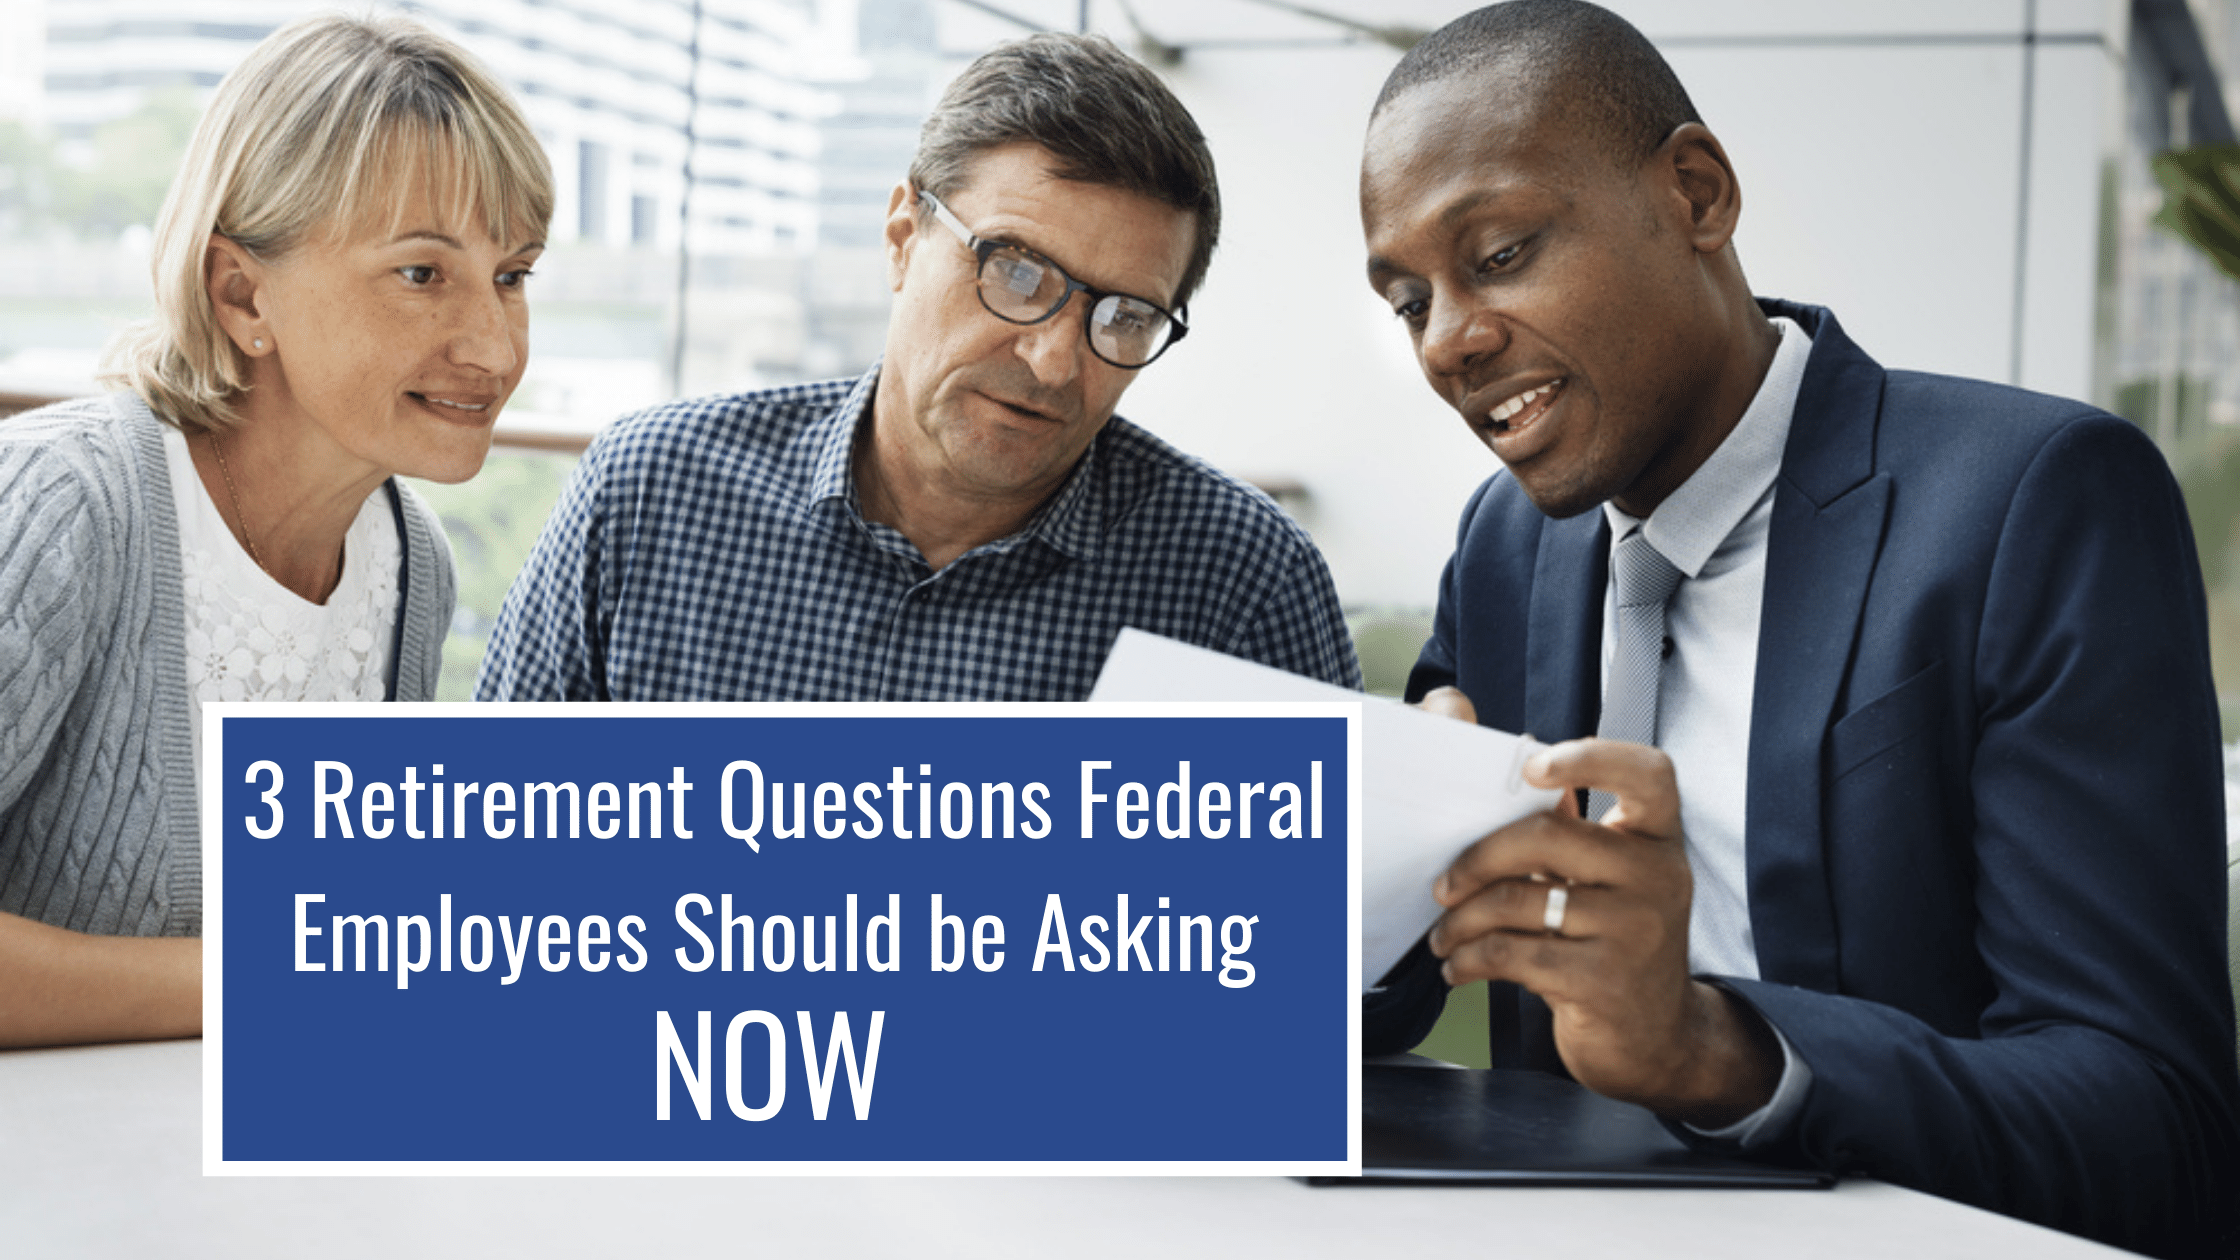 3 Retirement Questions Federal Employees Should be Asking Now